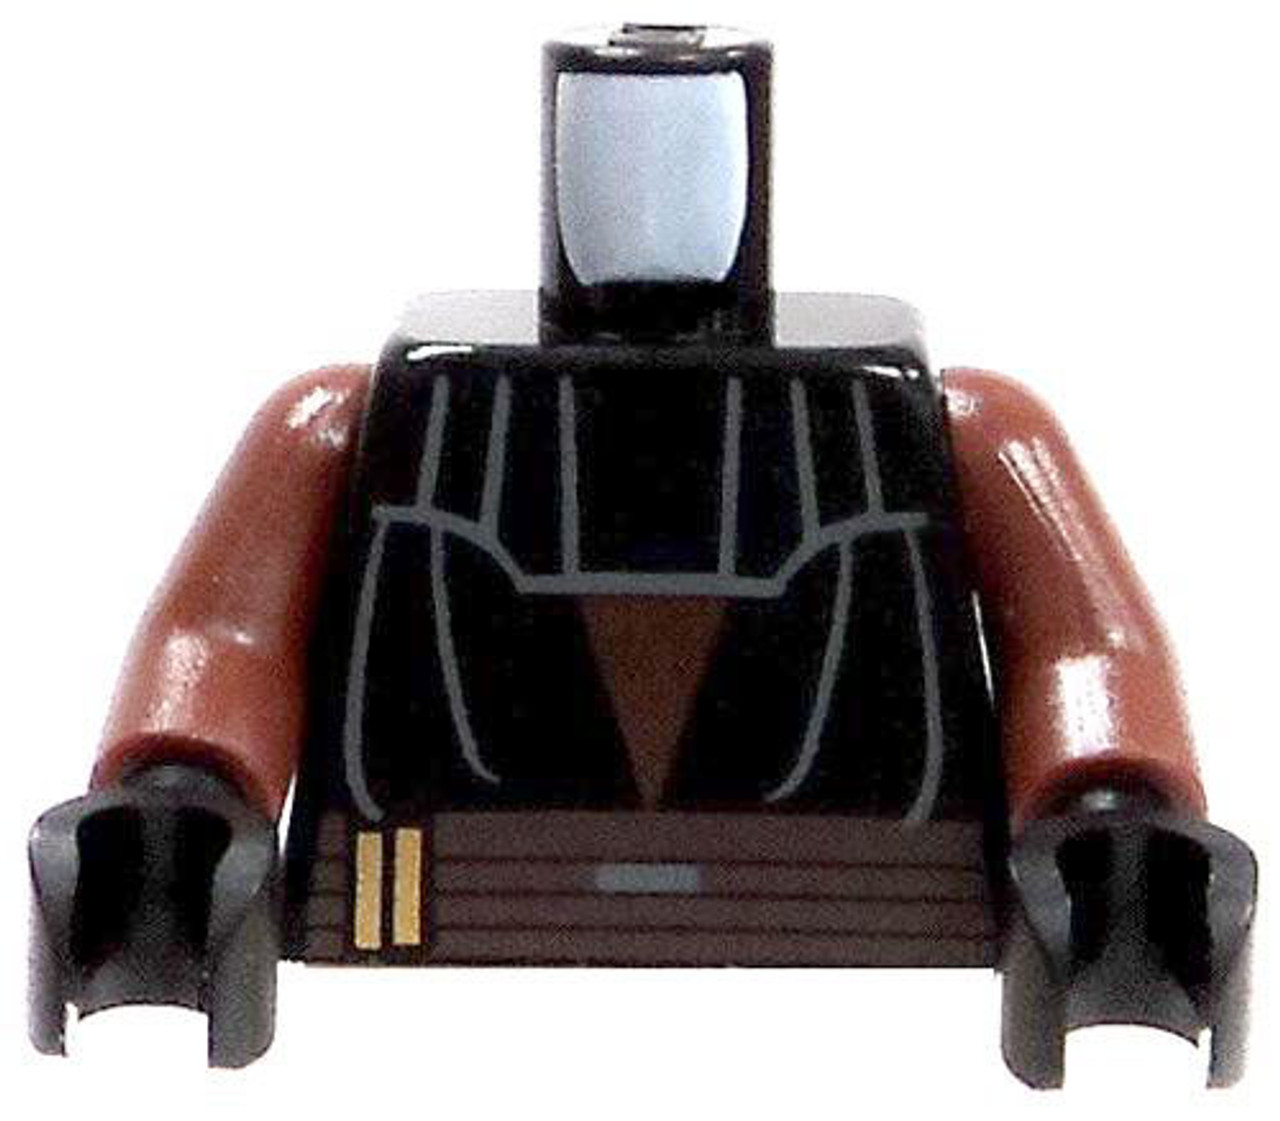 LEGO Star Wars Dark Brown Torso with Black Tunic & Upper Chest Protection Loose Torso [Loose]